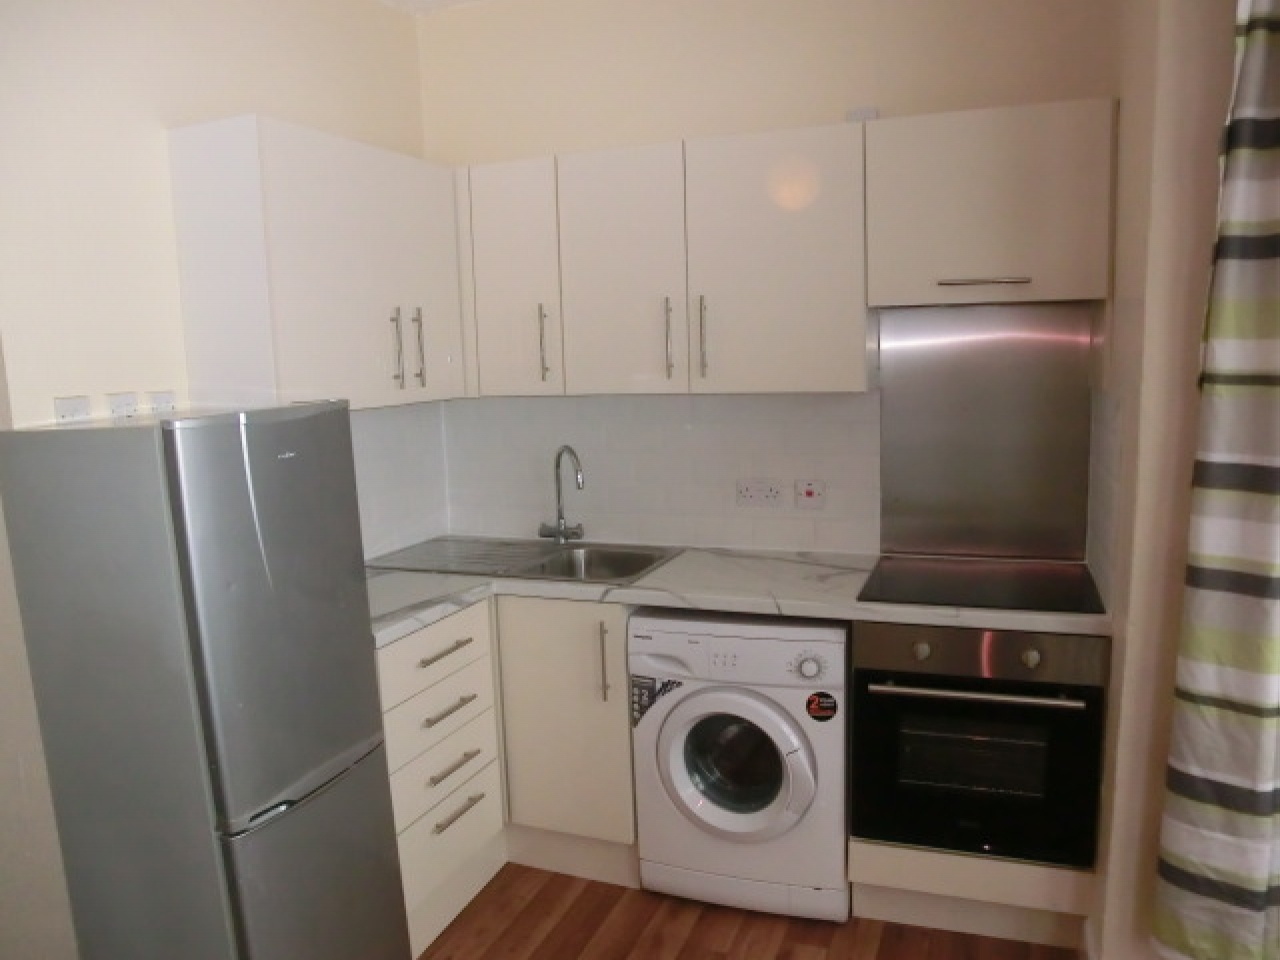 Apartment Flat/apartment Let in Southampton - Property photograph